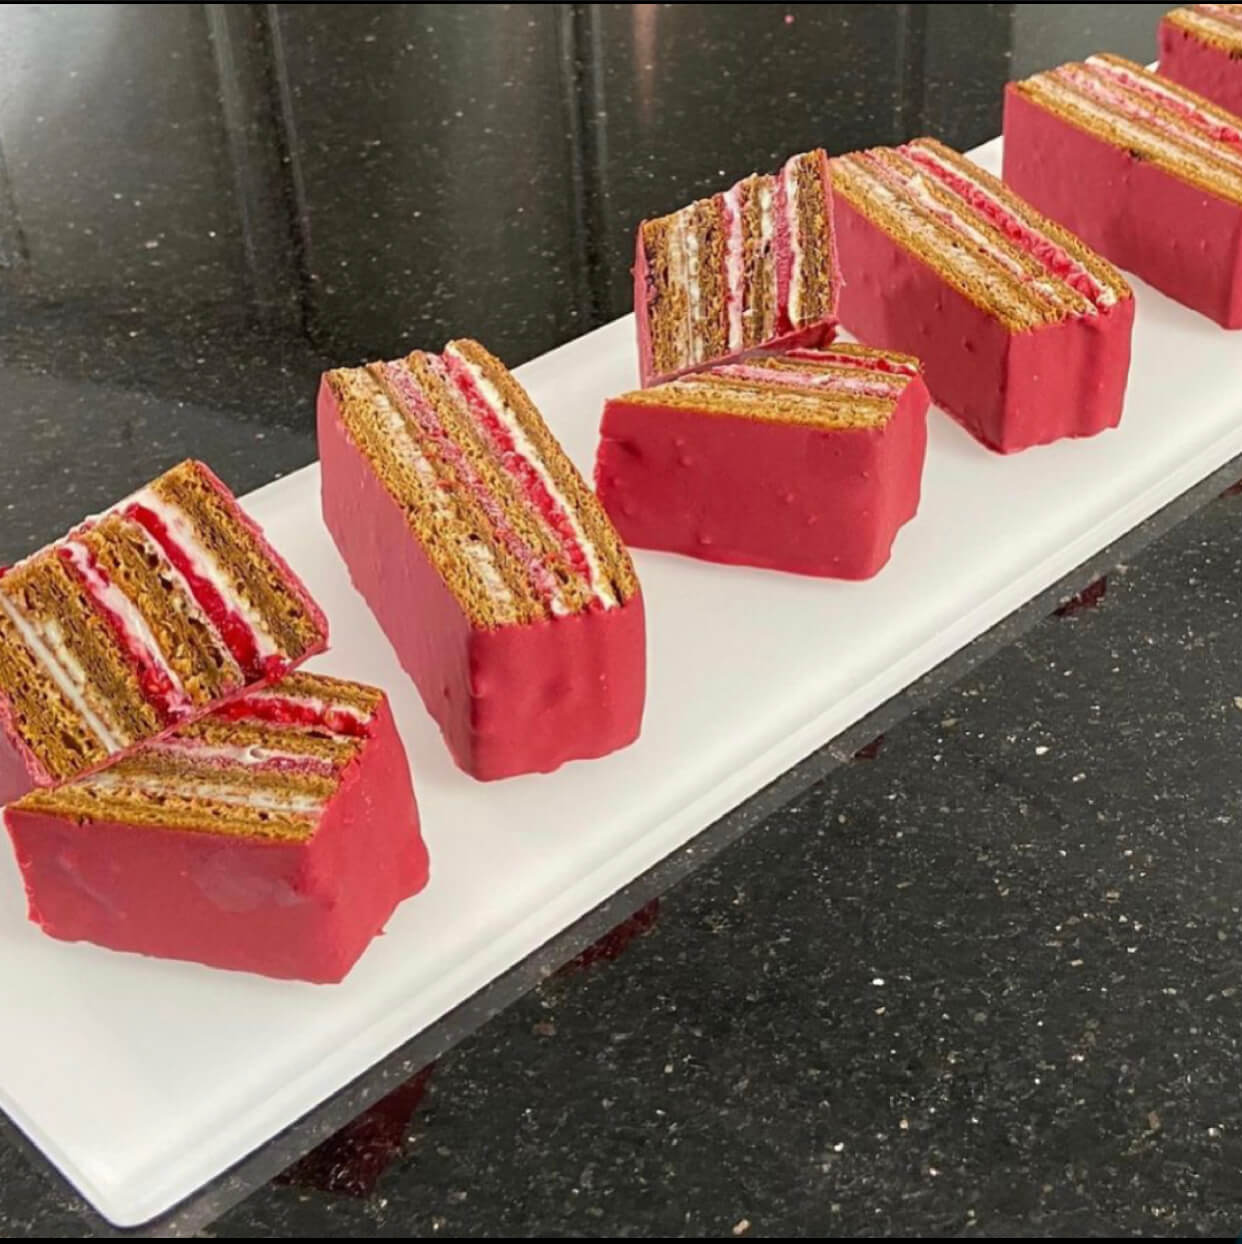 Guillaume Pastry Arts recipe